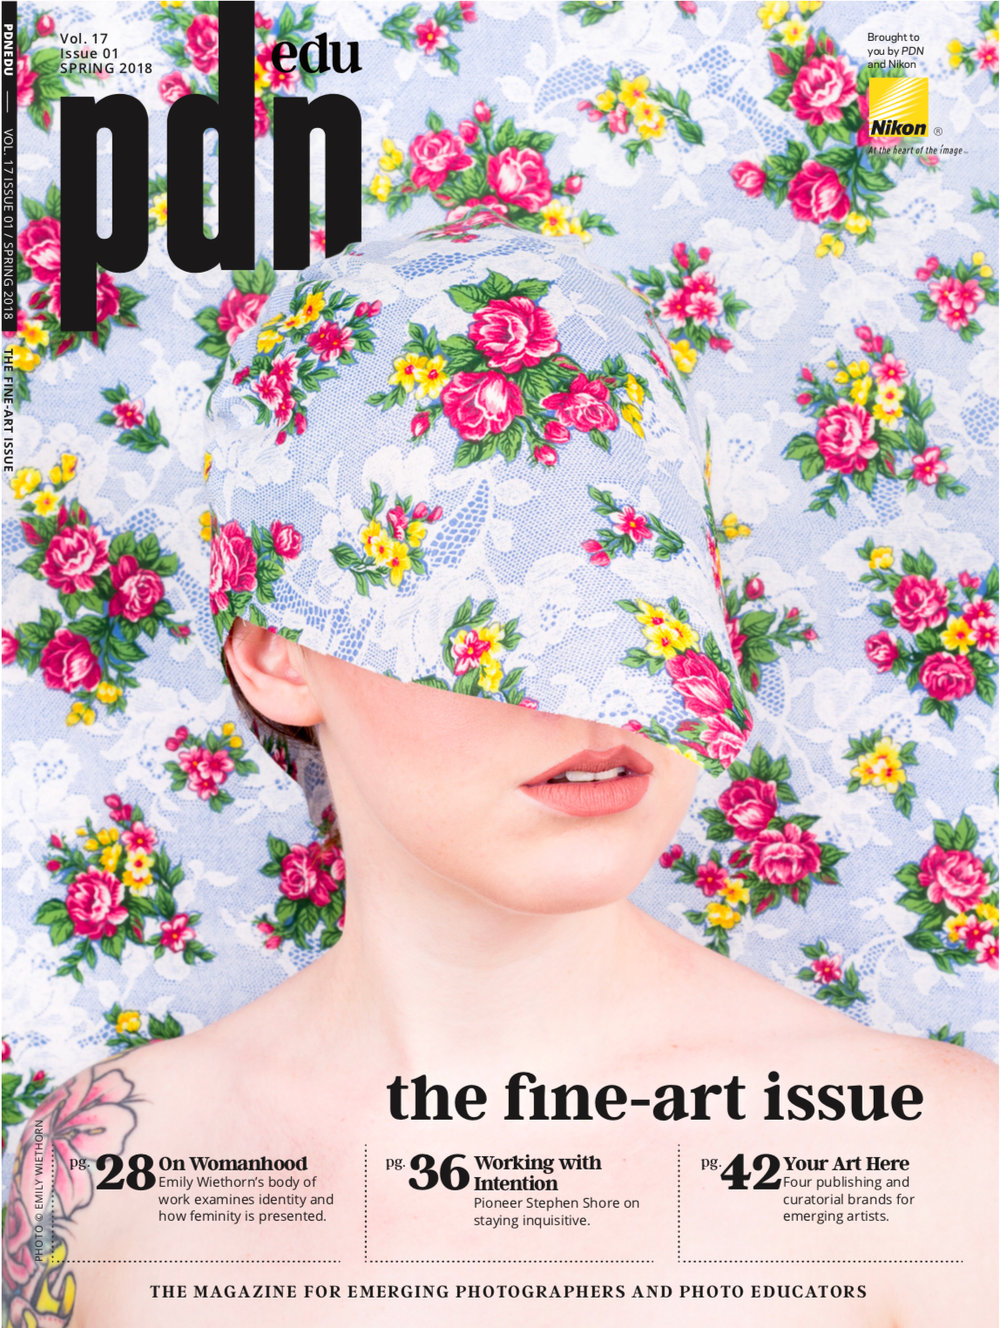 PDN EDU , Vol. 17 Issue 1 / Spring 2018